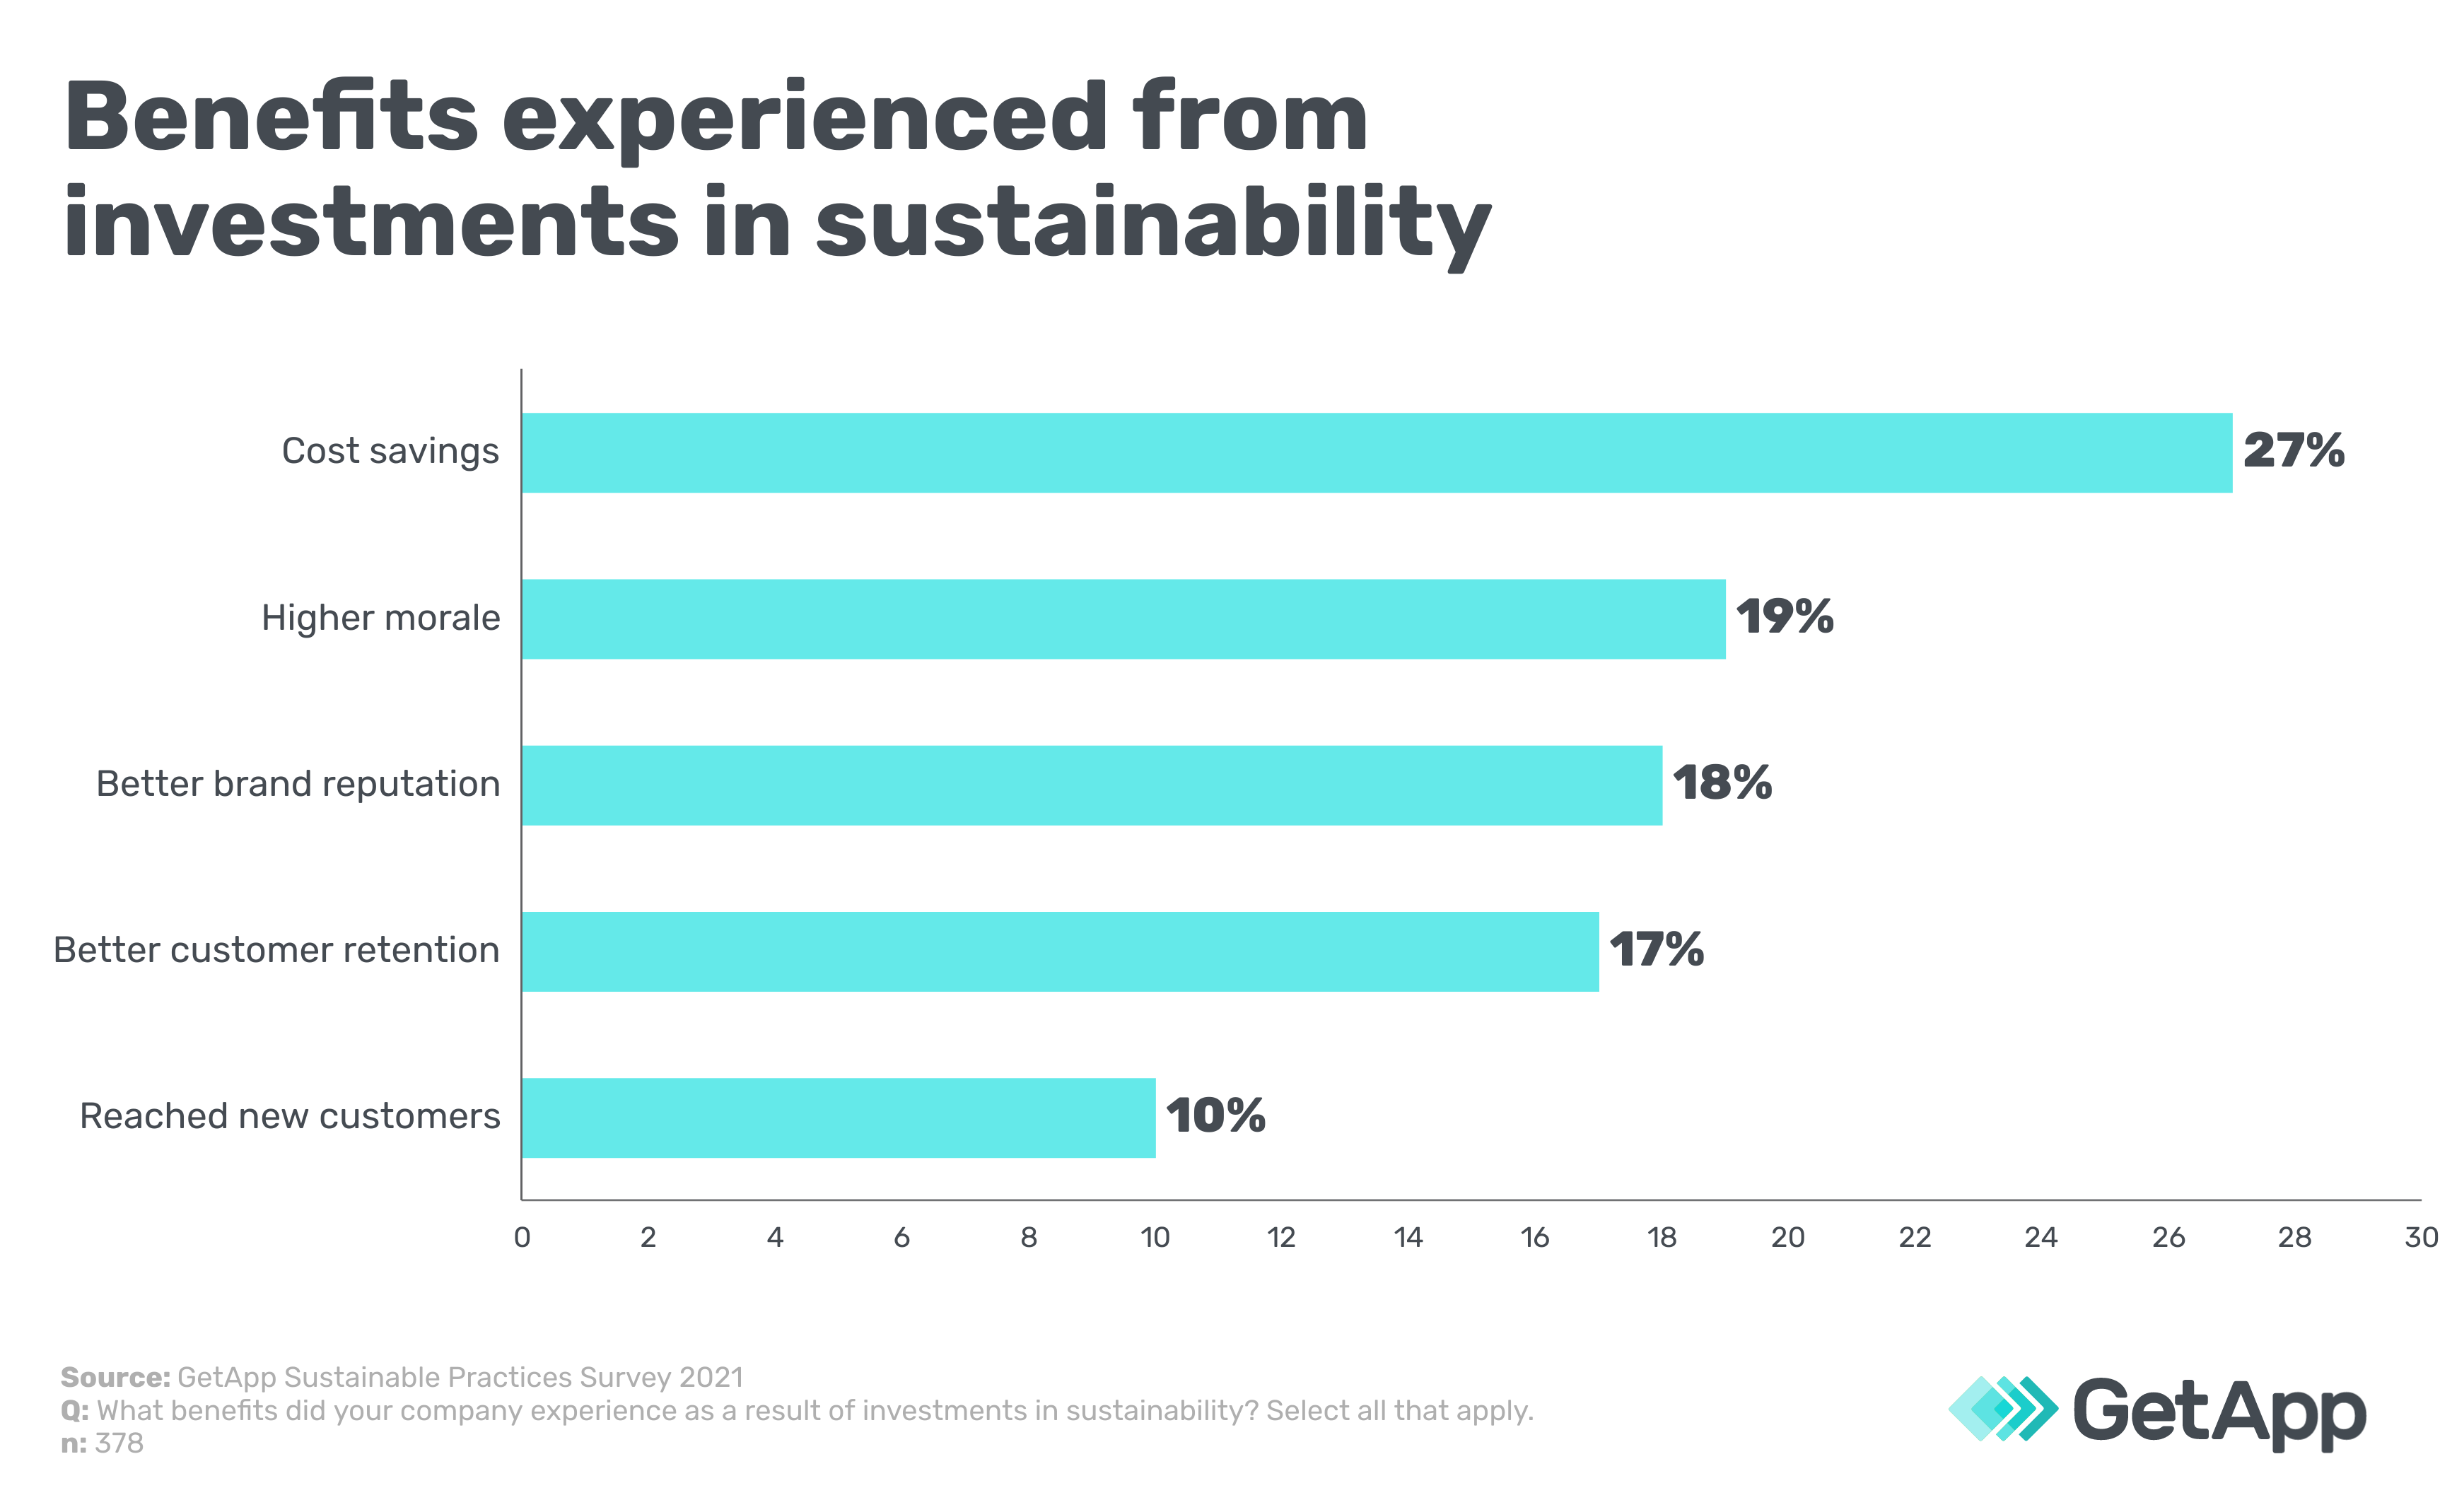 Benefits experienced from investments in sustainability